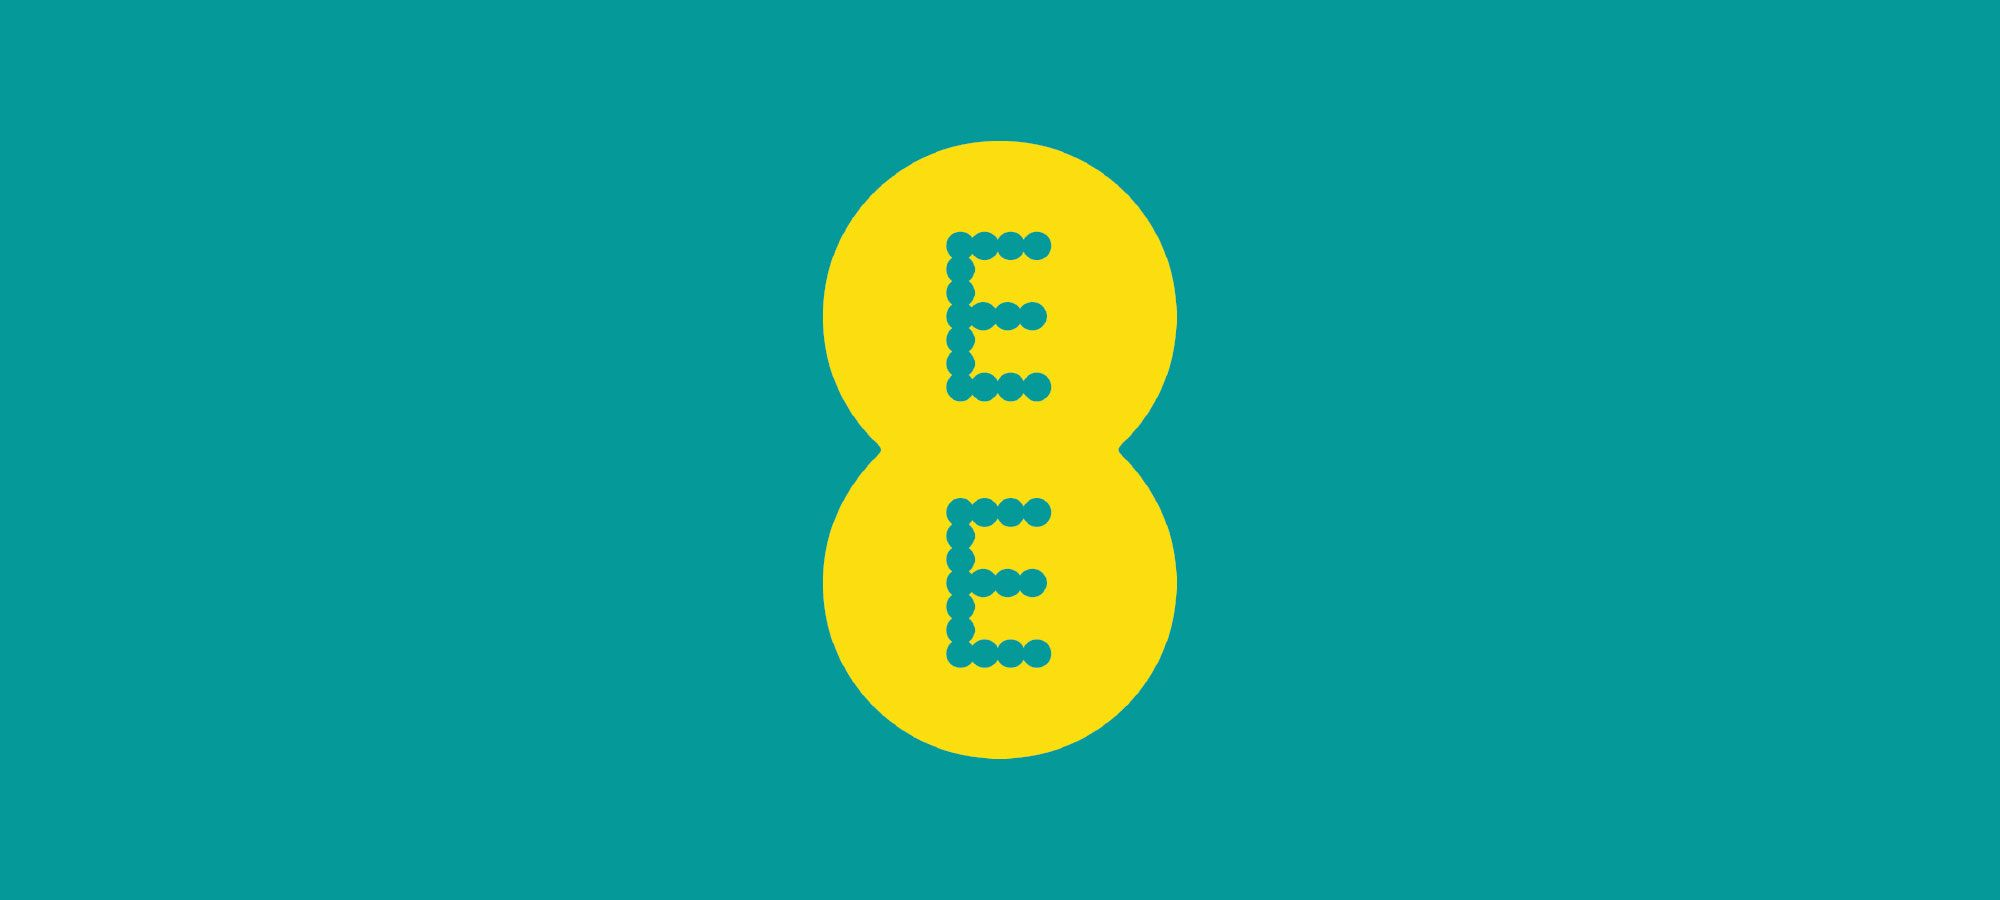 The benefits of choosing EE